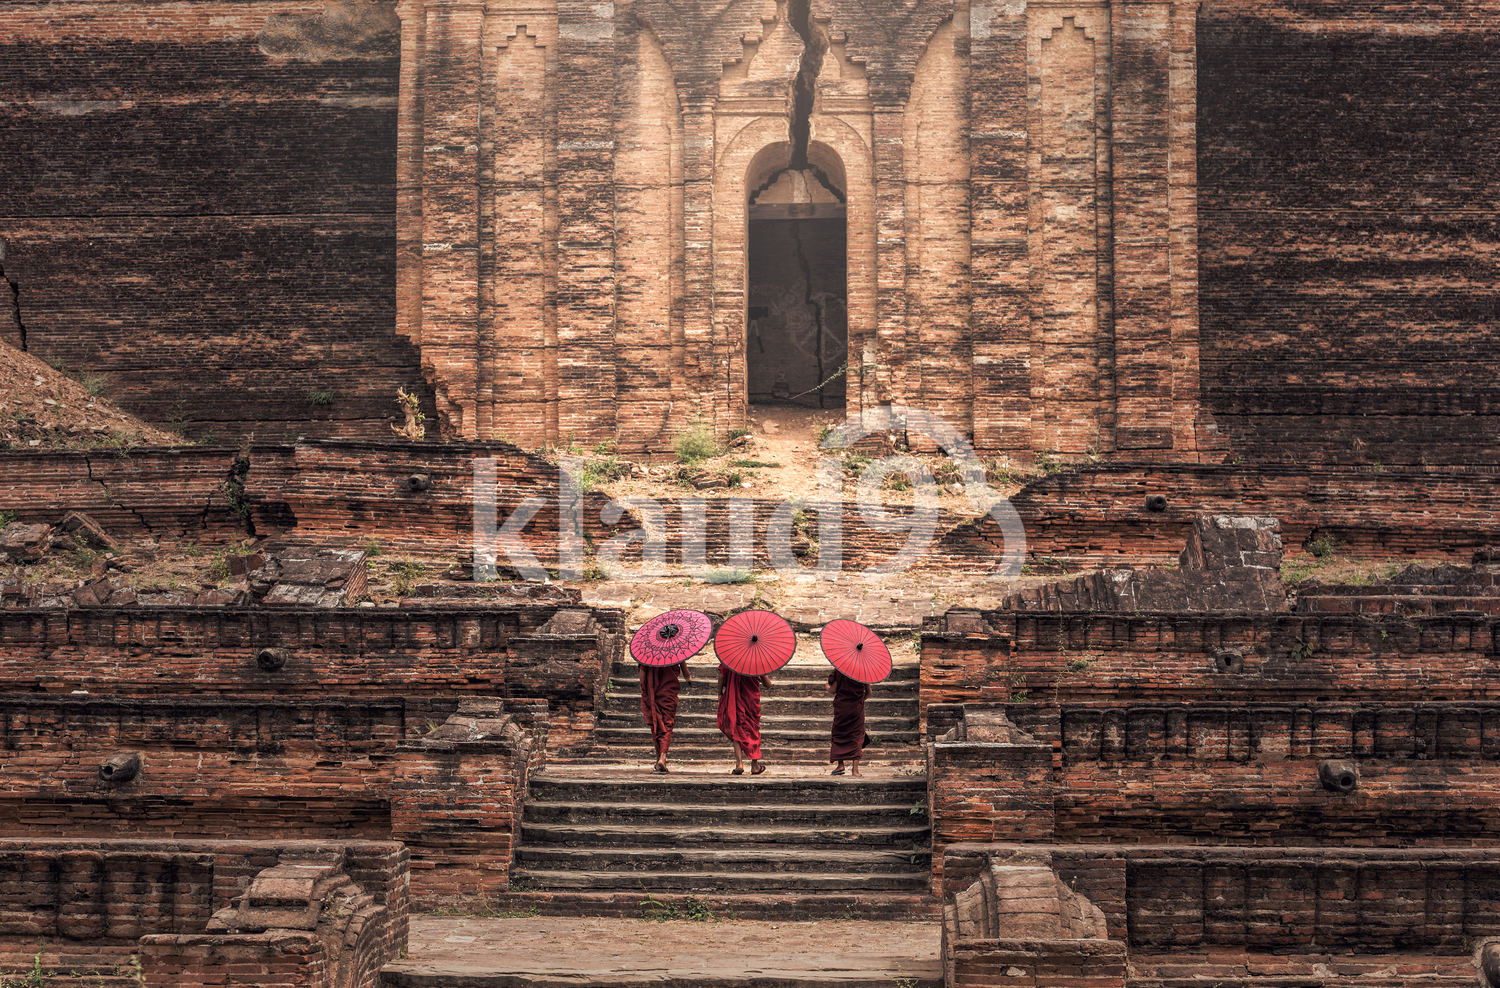 Buddhist novice are walking in temple